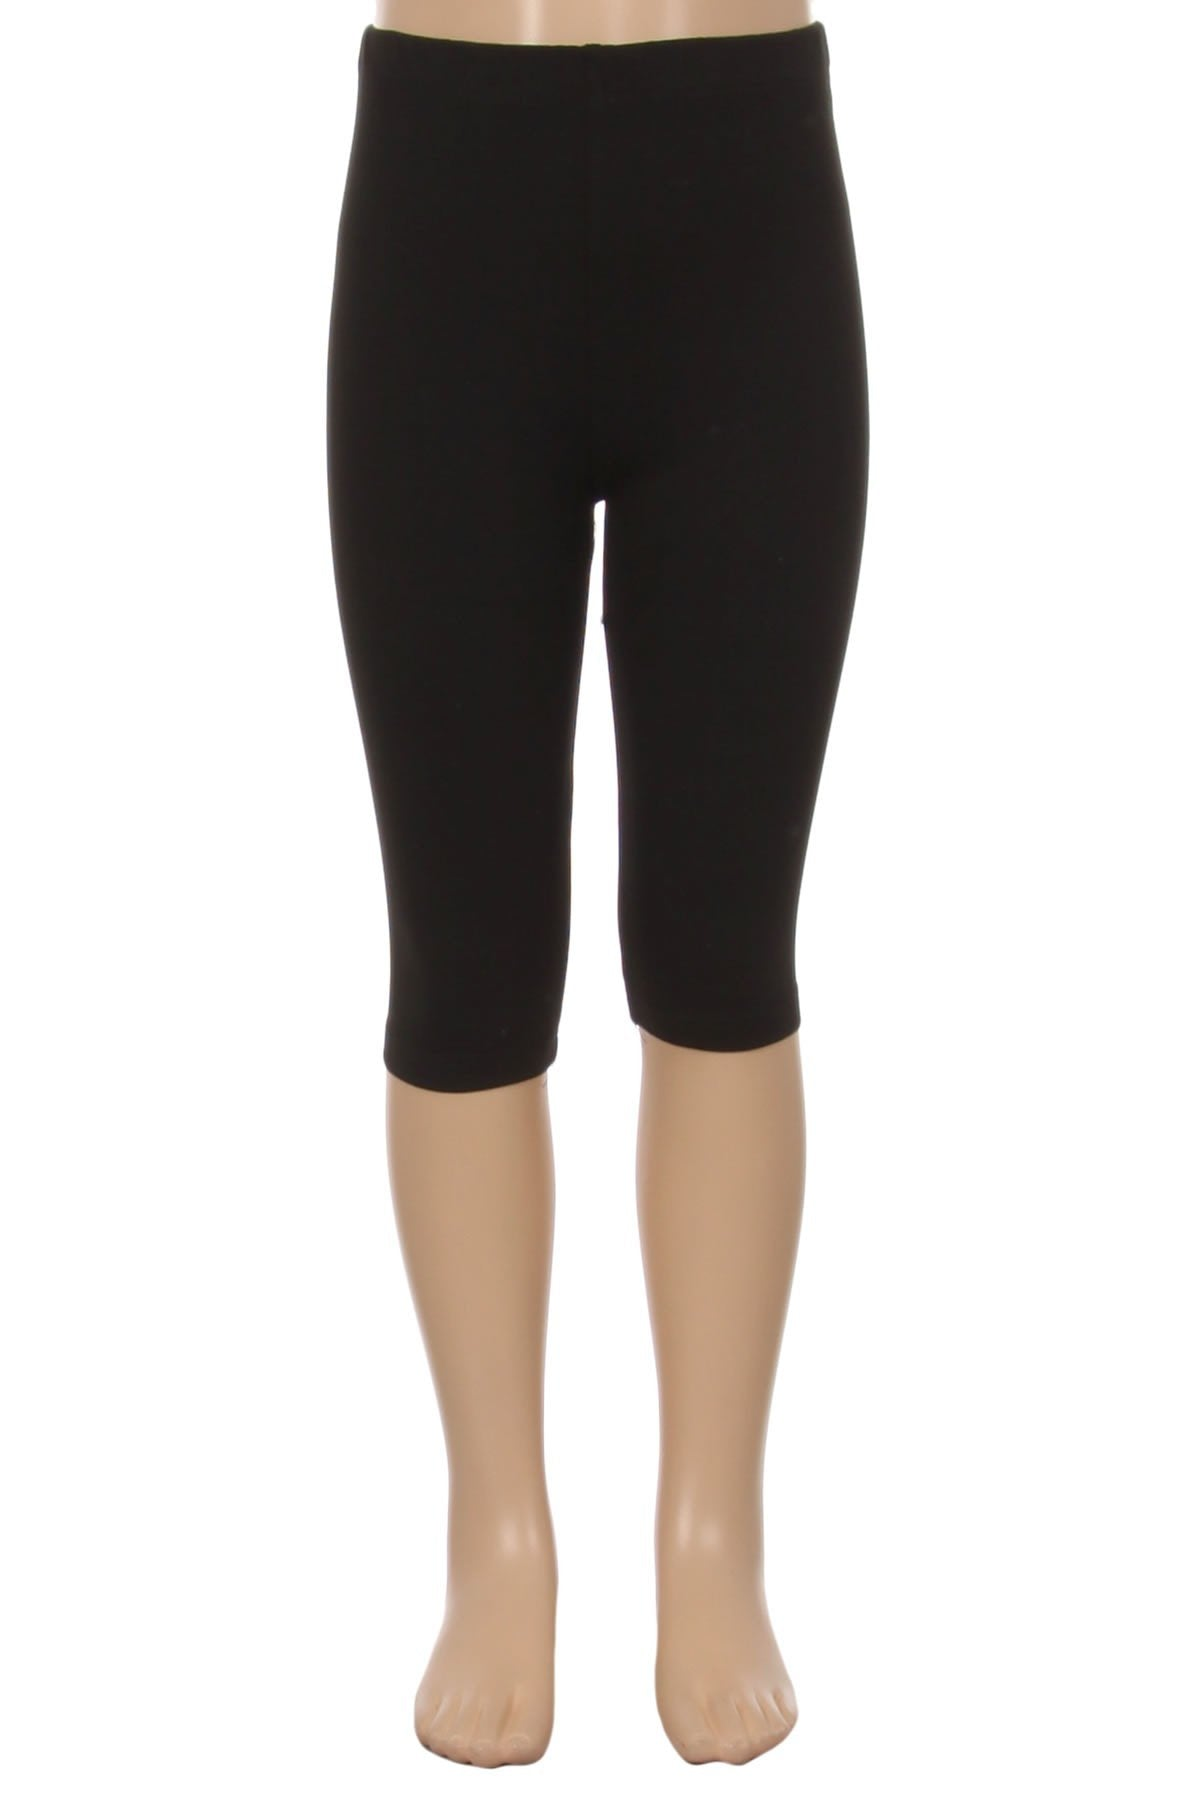 Girl's Black Capri Leggings Solid Black: S/L - MomMe and More